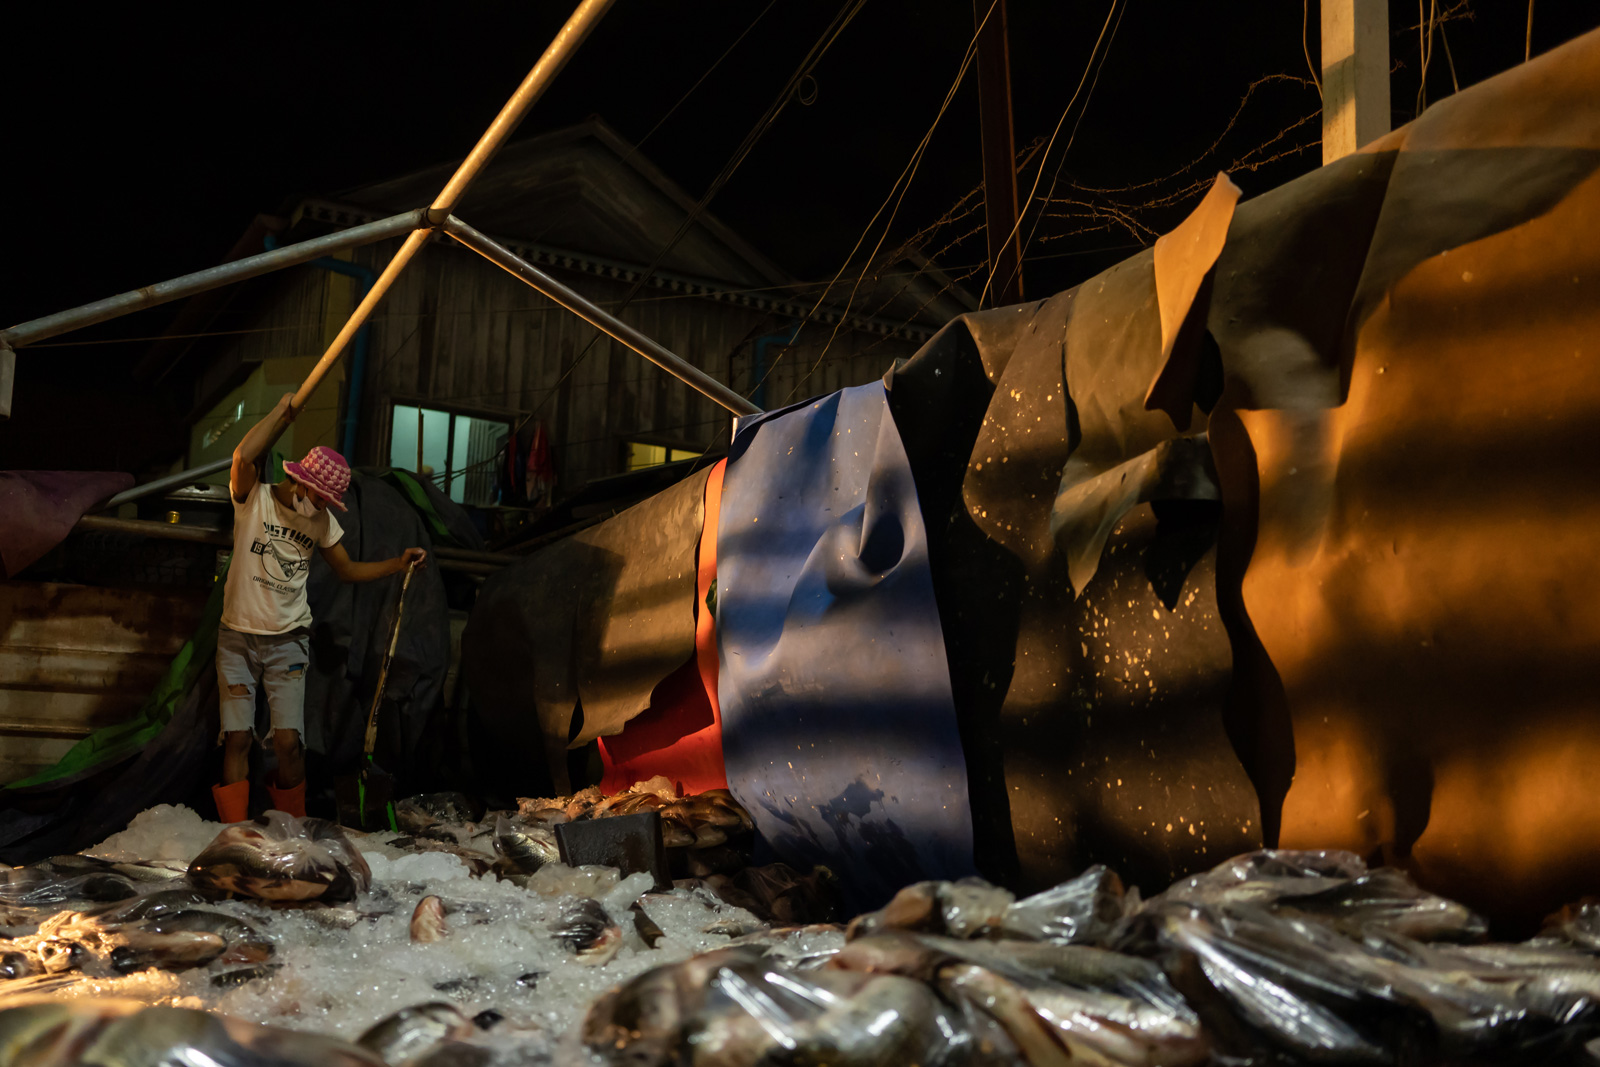 A worker offloads a truck importing fish from Vietnam to Cambodia at Phnom Penh's Prek Pnov Market.